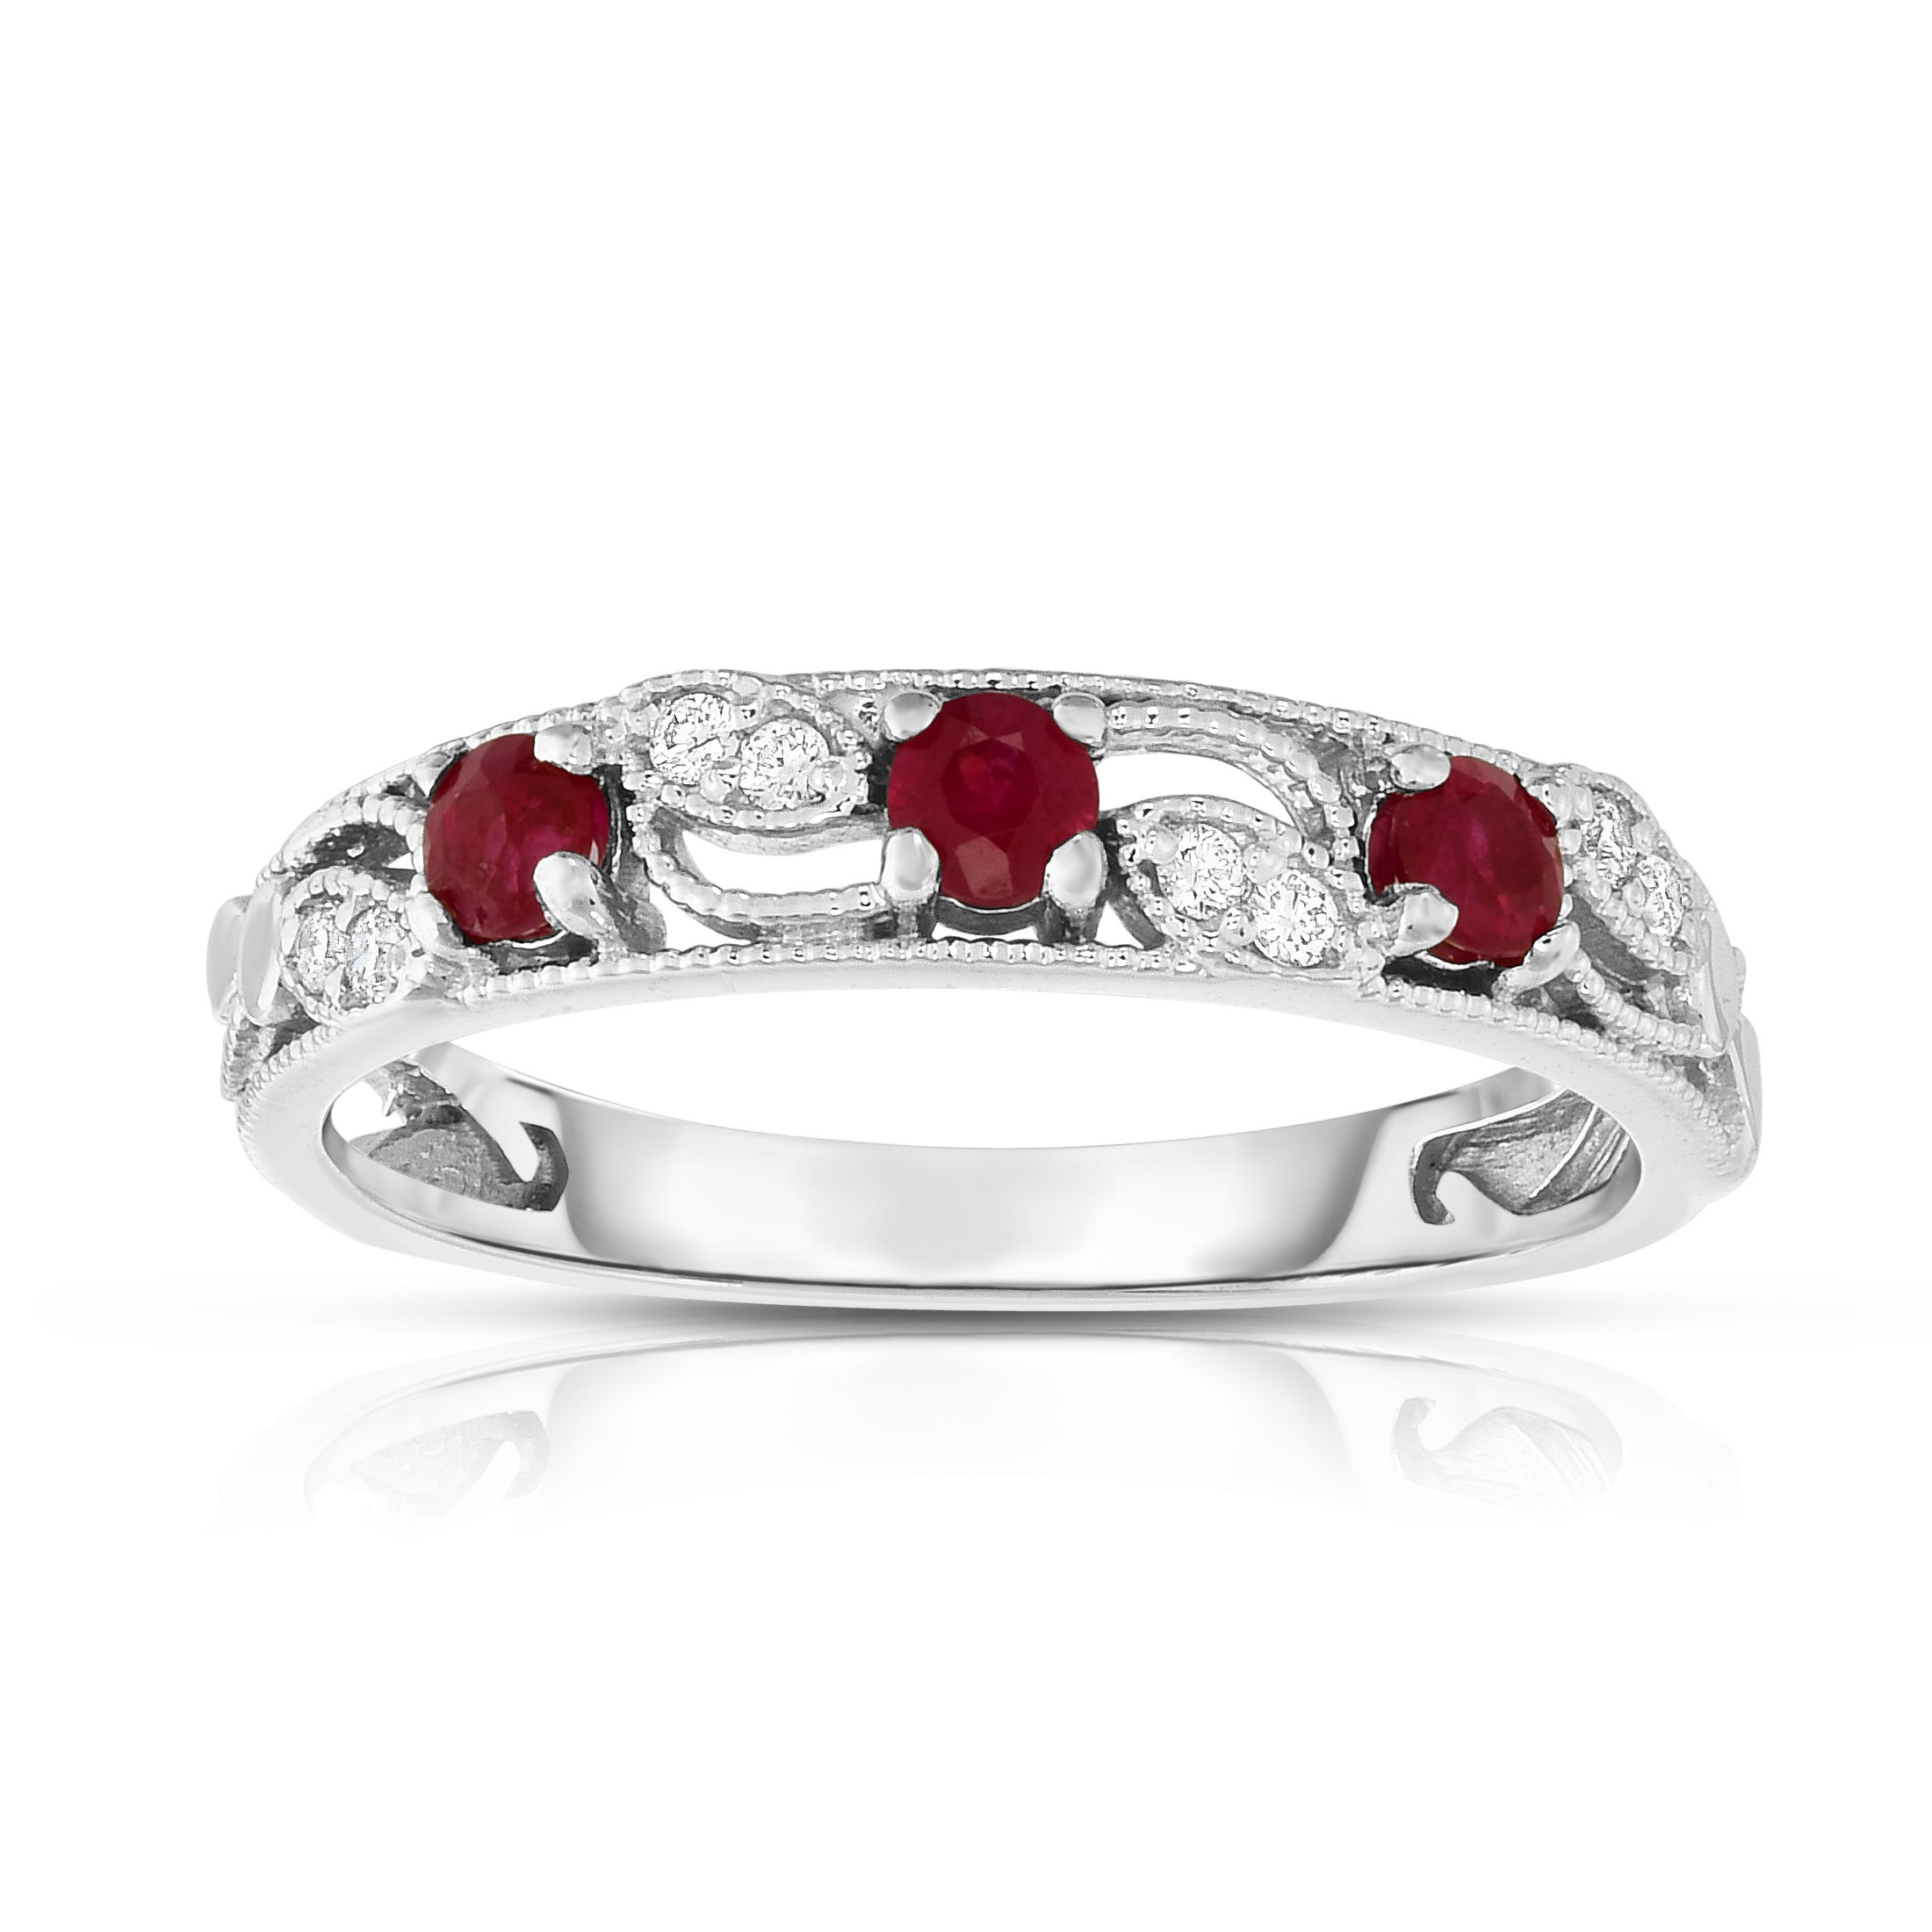 ruby antique ring antiques and karen from about deakin late diamond product main victorian